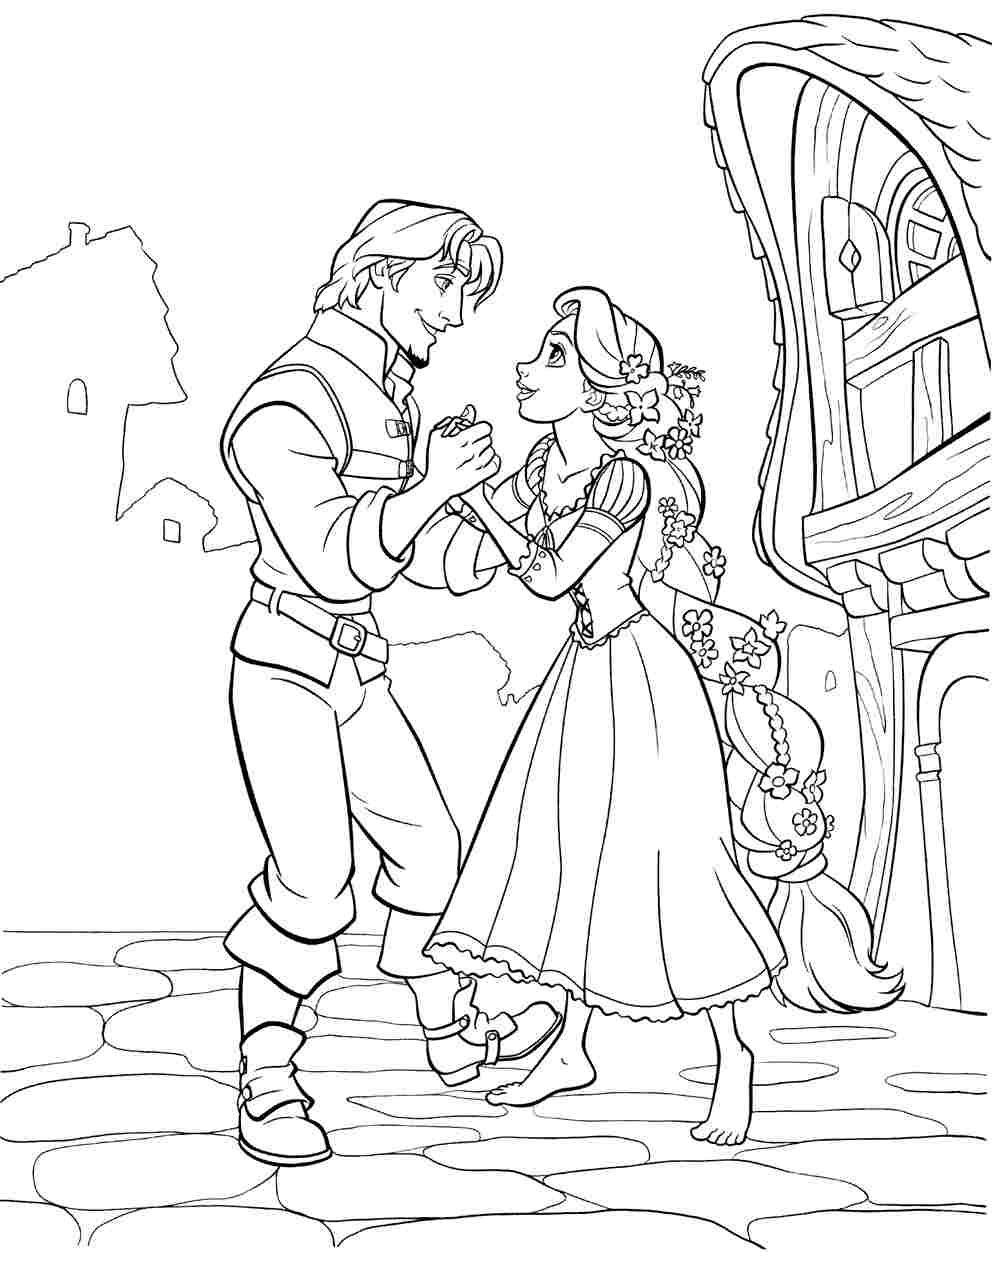 Walt Disney Ausmalbilder Rapunzel Neu Verföhnt : Disney Princess Tangled Rapunzel Coloring Sheets Free Printable For